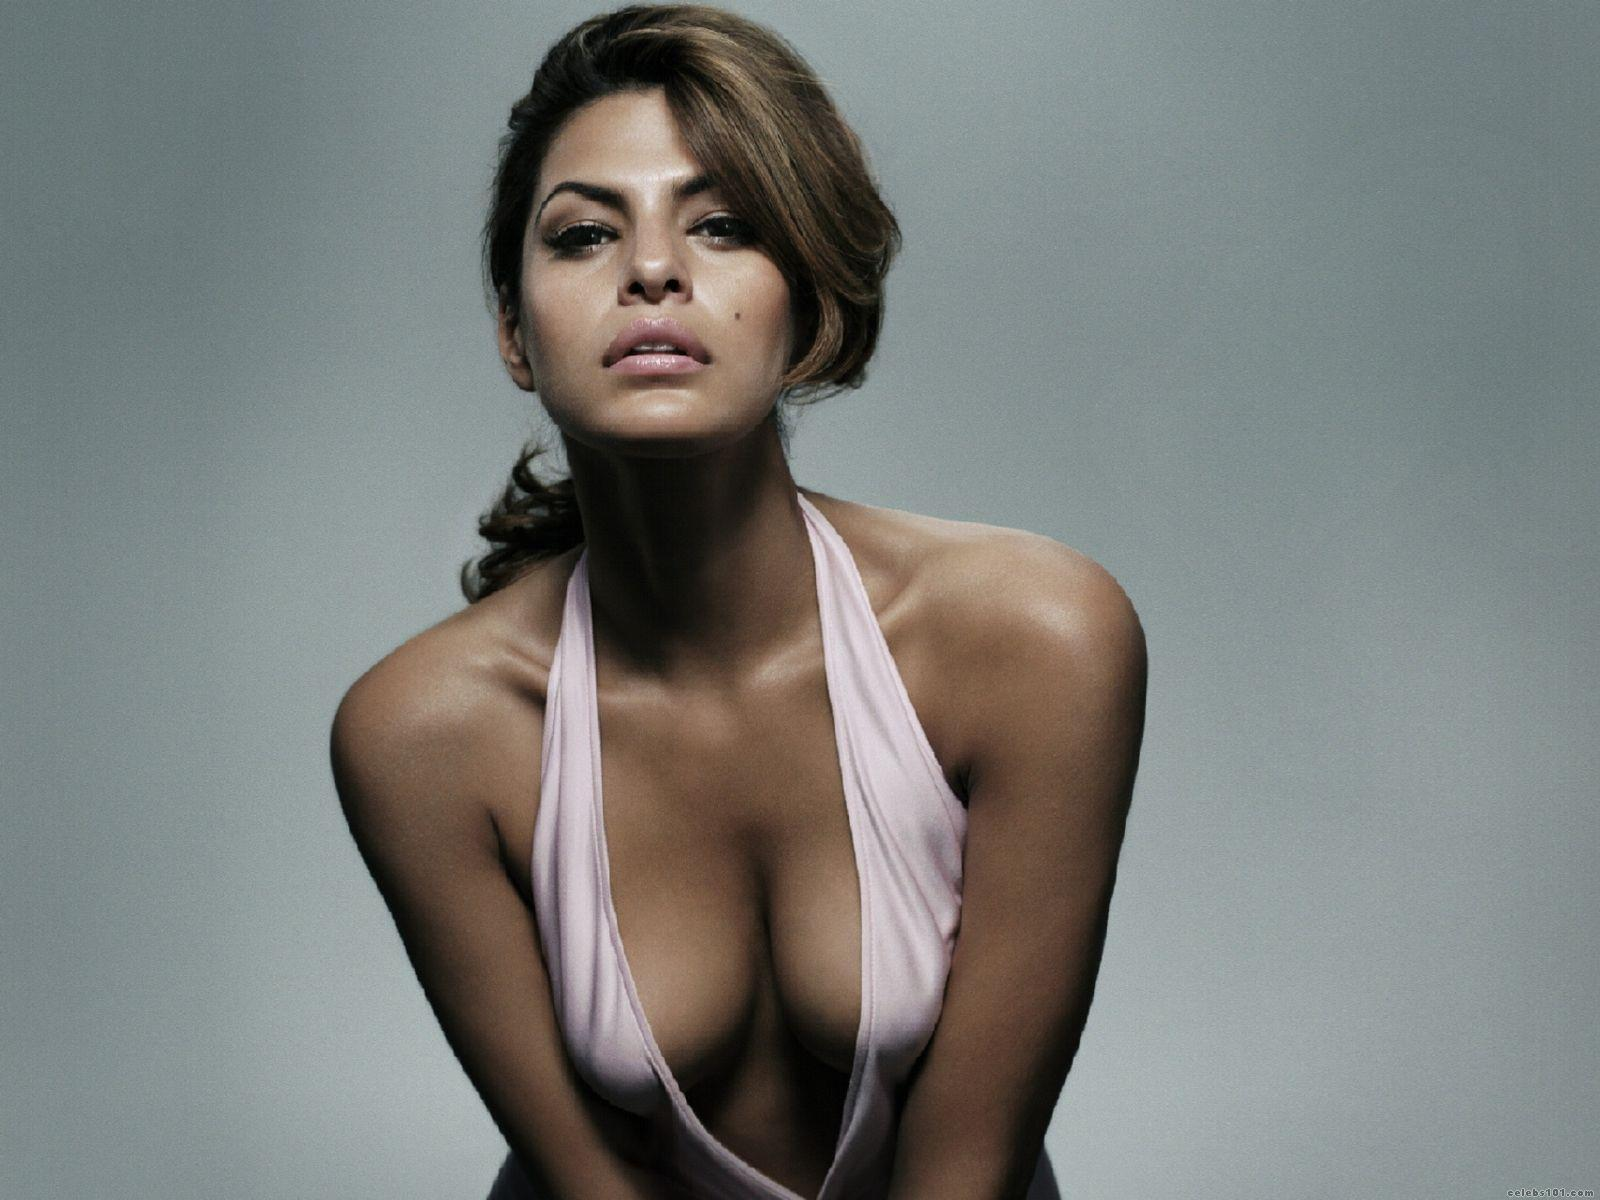 Eva Mendes Nude Pics and Videos - - Top